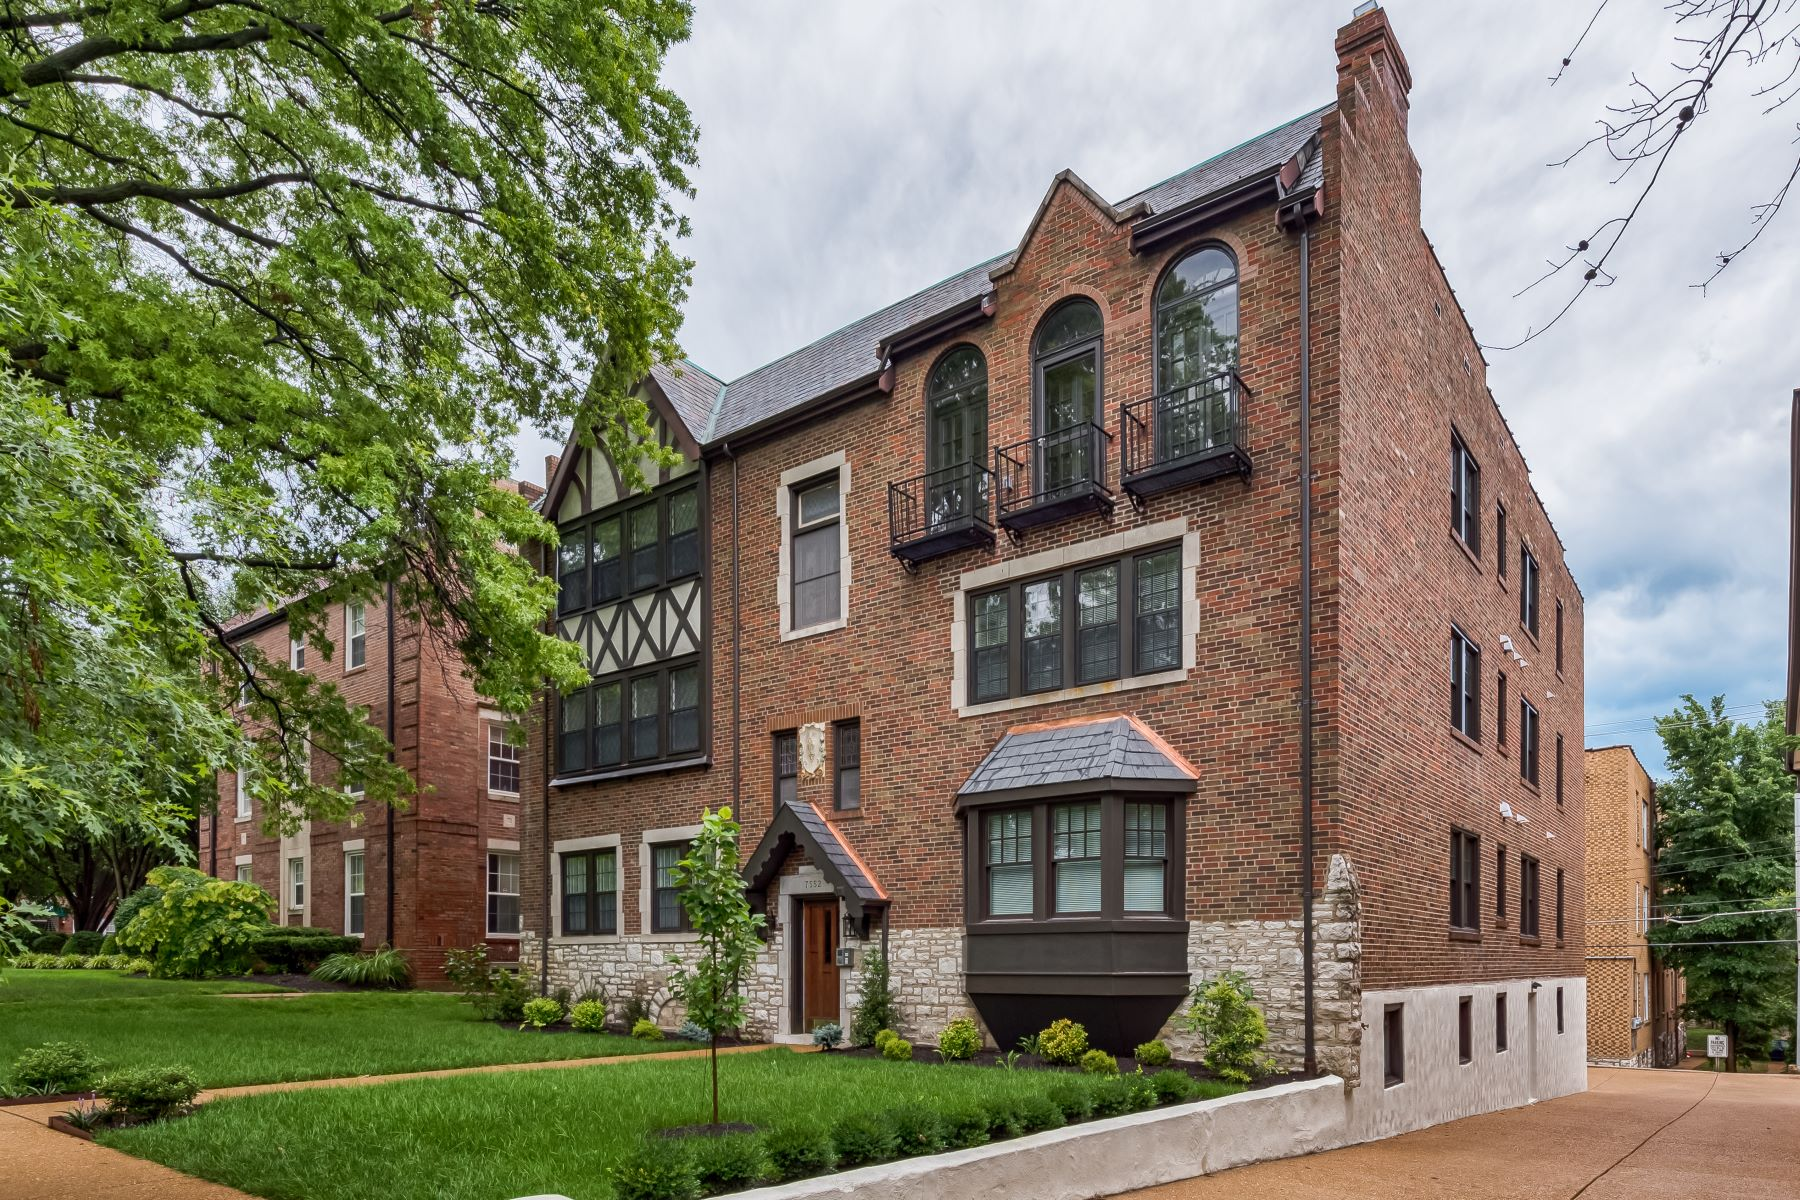 Additional photo for property listing at Charming & Fully Renovated Clayton Apartment 7552 Wydown Blvd #2W Clayton, Missouri 63105 United States